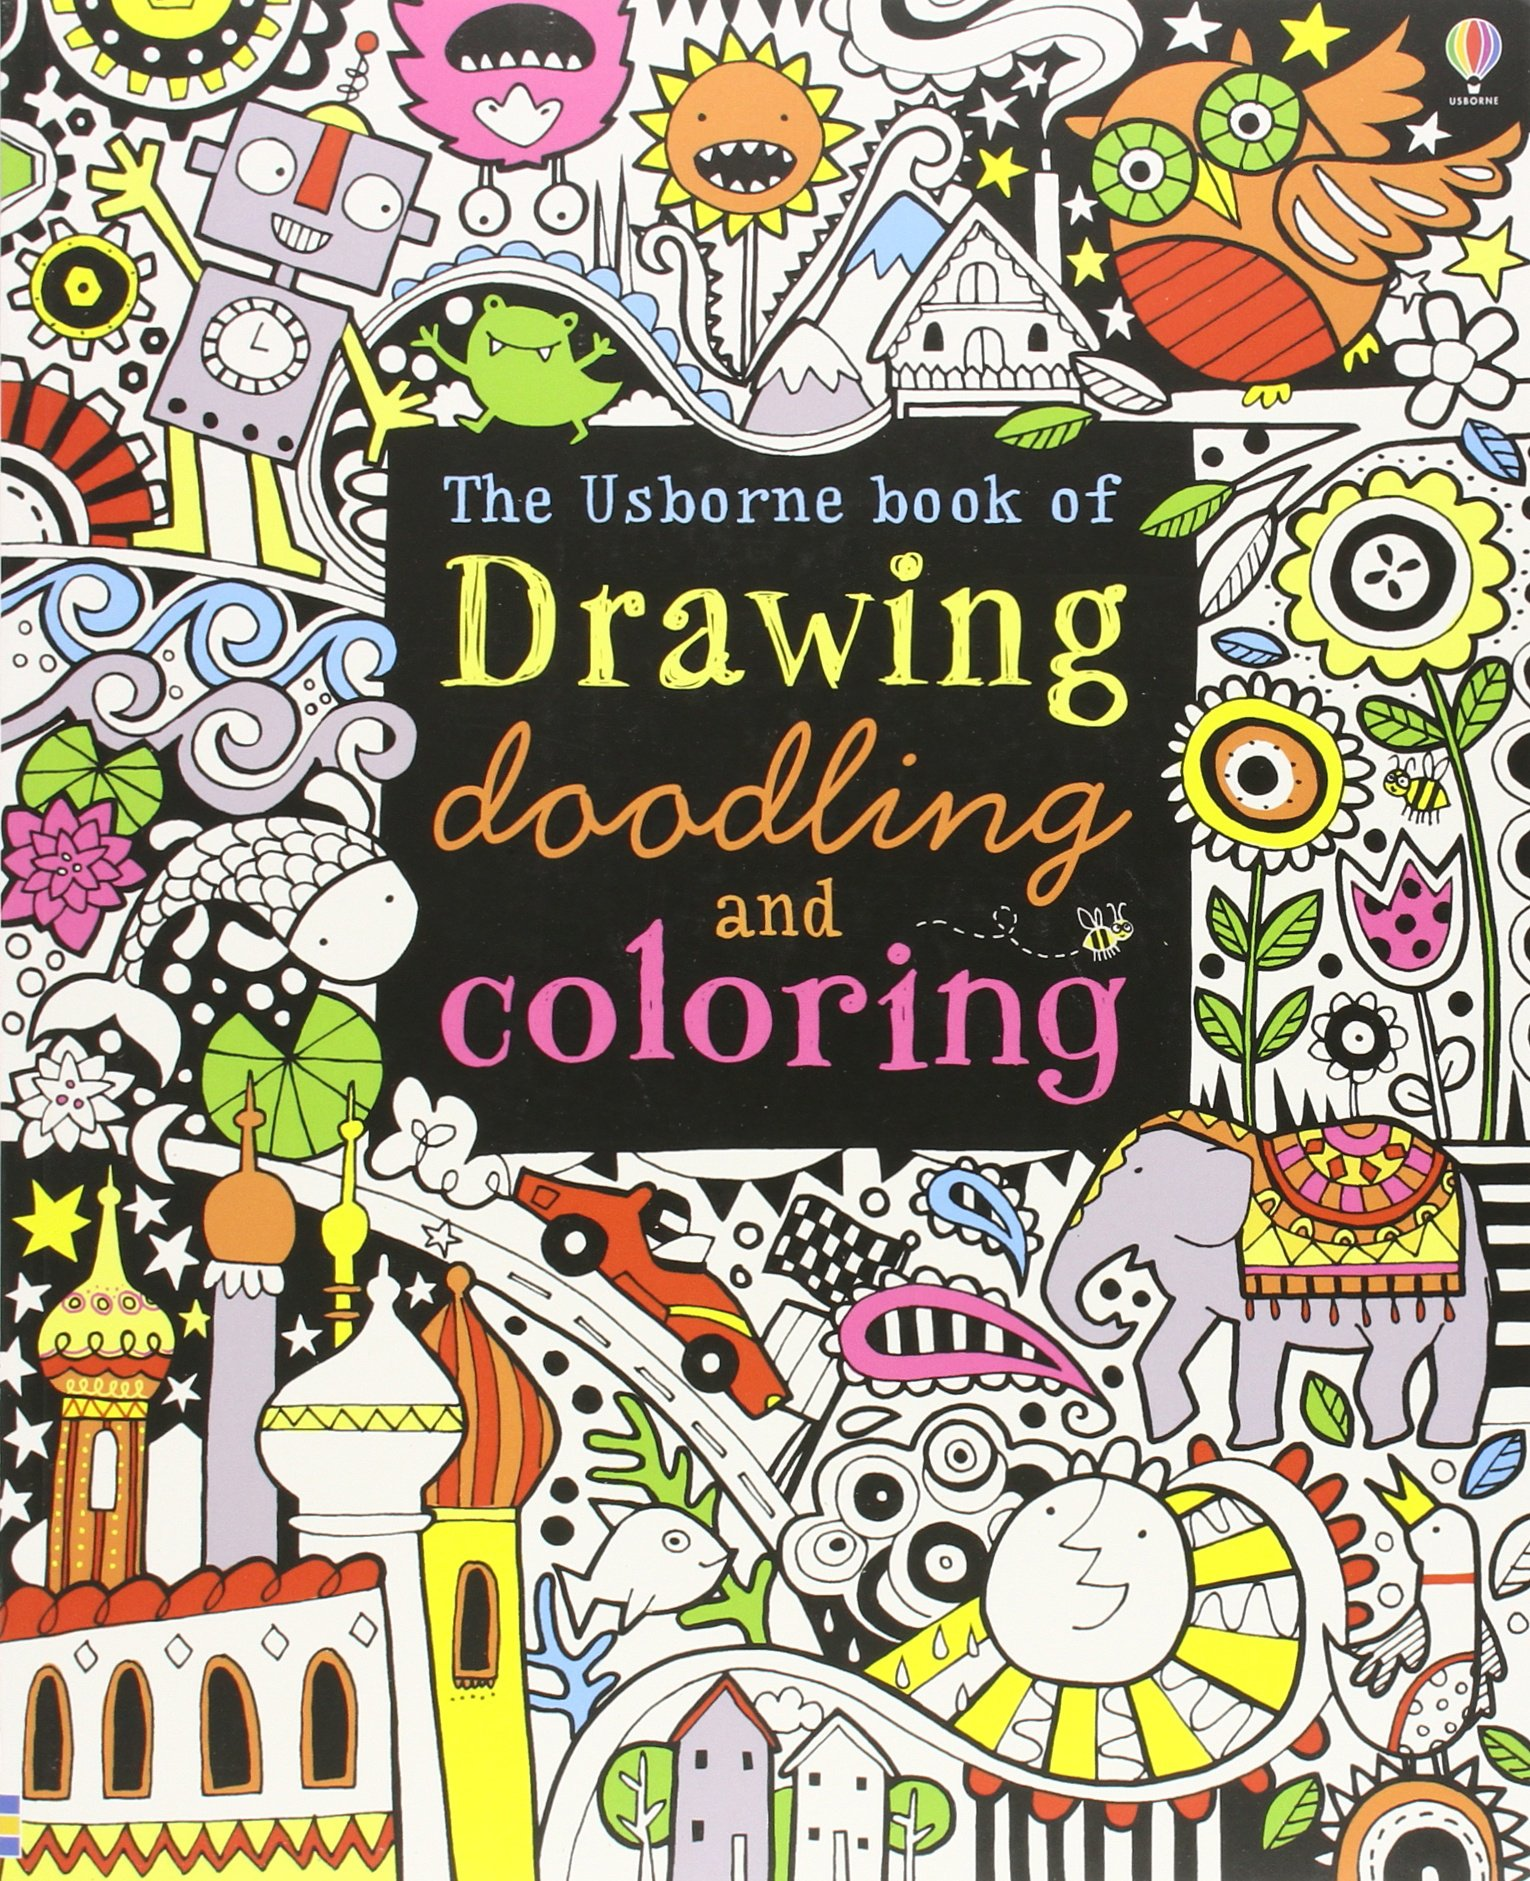 Pretty Coloring Book Wallpaper Huge Coloring Book App Solid Bulk Coloring Books Animal Coloring Book Young Animal Coloring Books OrangeBig Coloring Books The Usborne Book Of Drawing, Doodling And Coloring: Fiona Watt ..